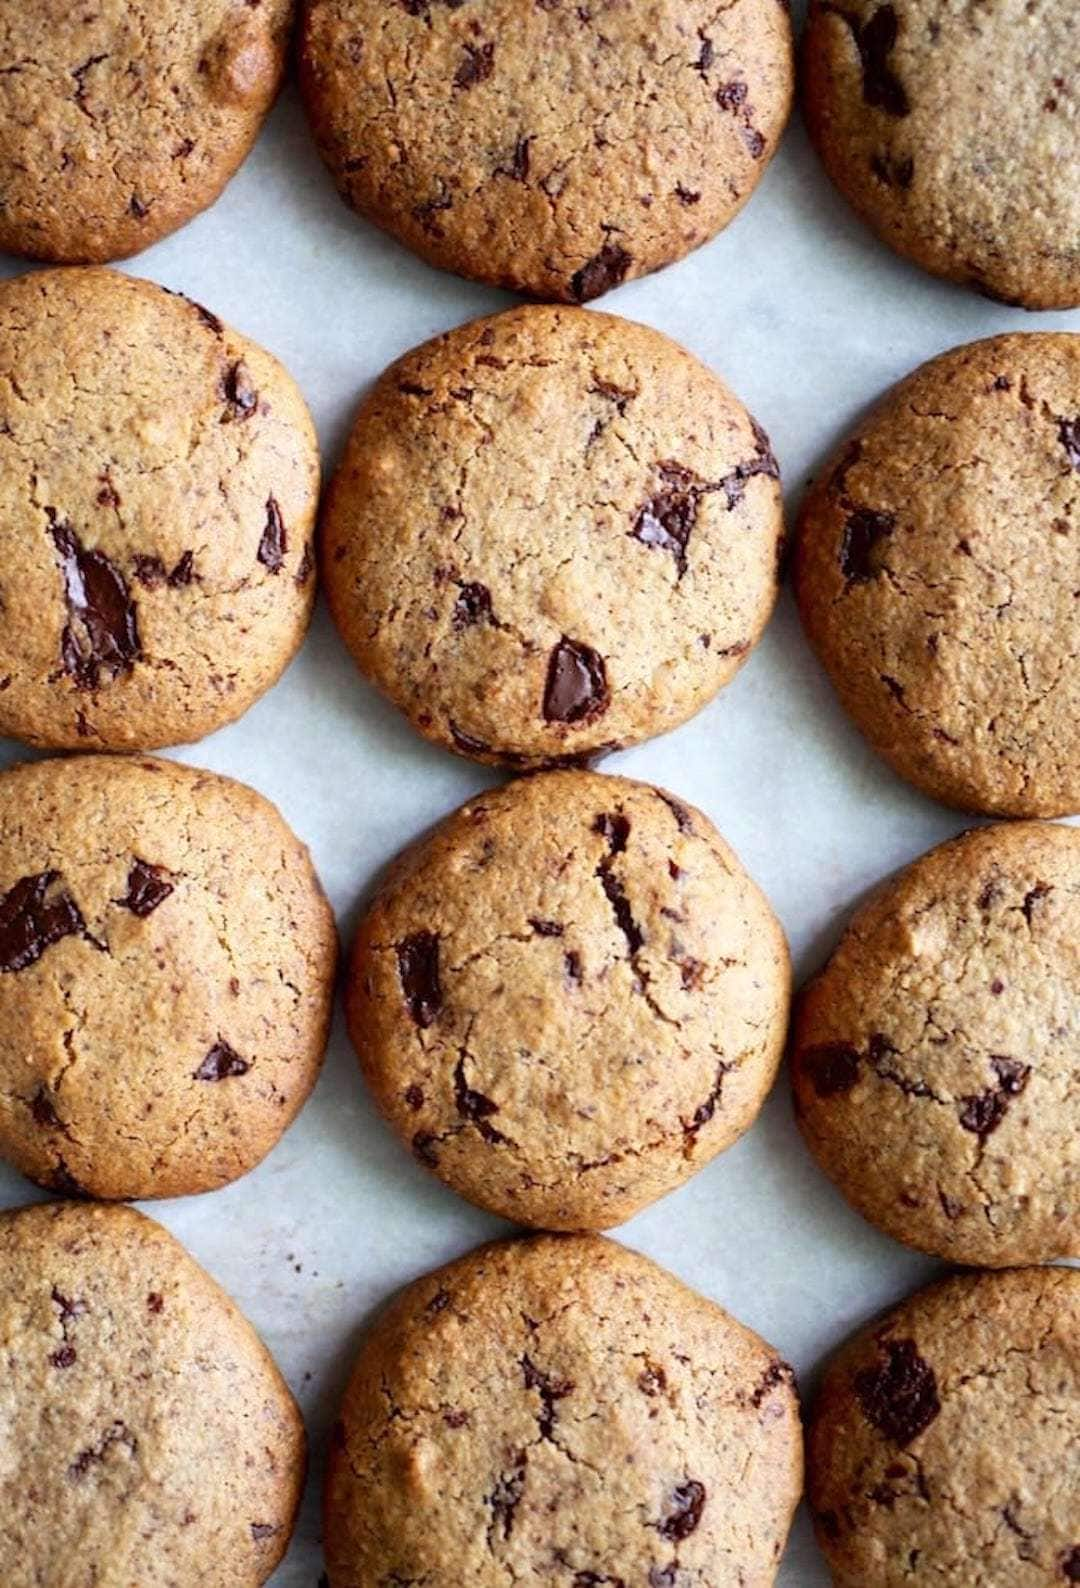 rows of hazelnut chocolate chip cookies